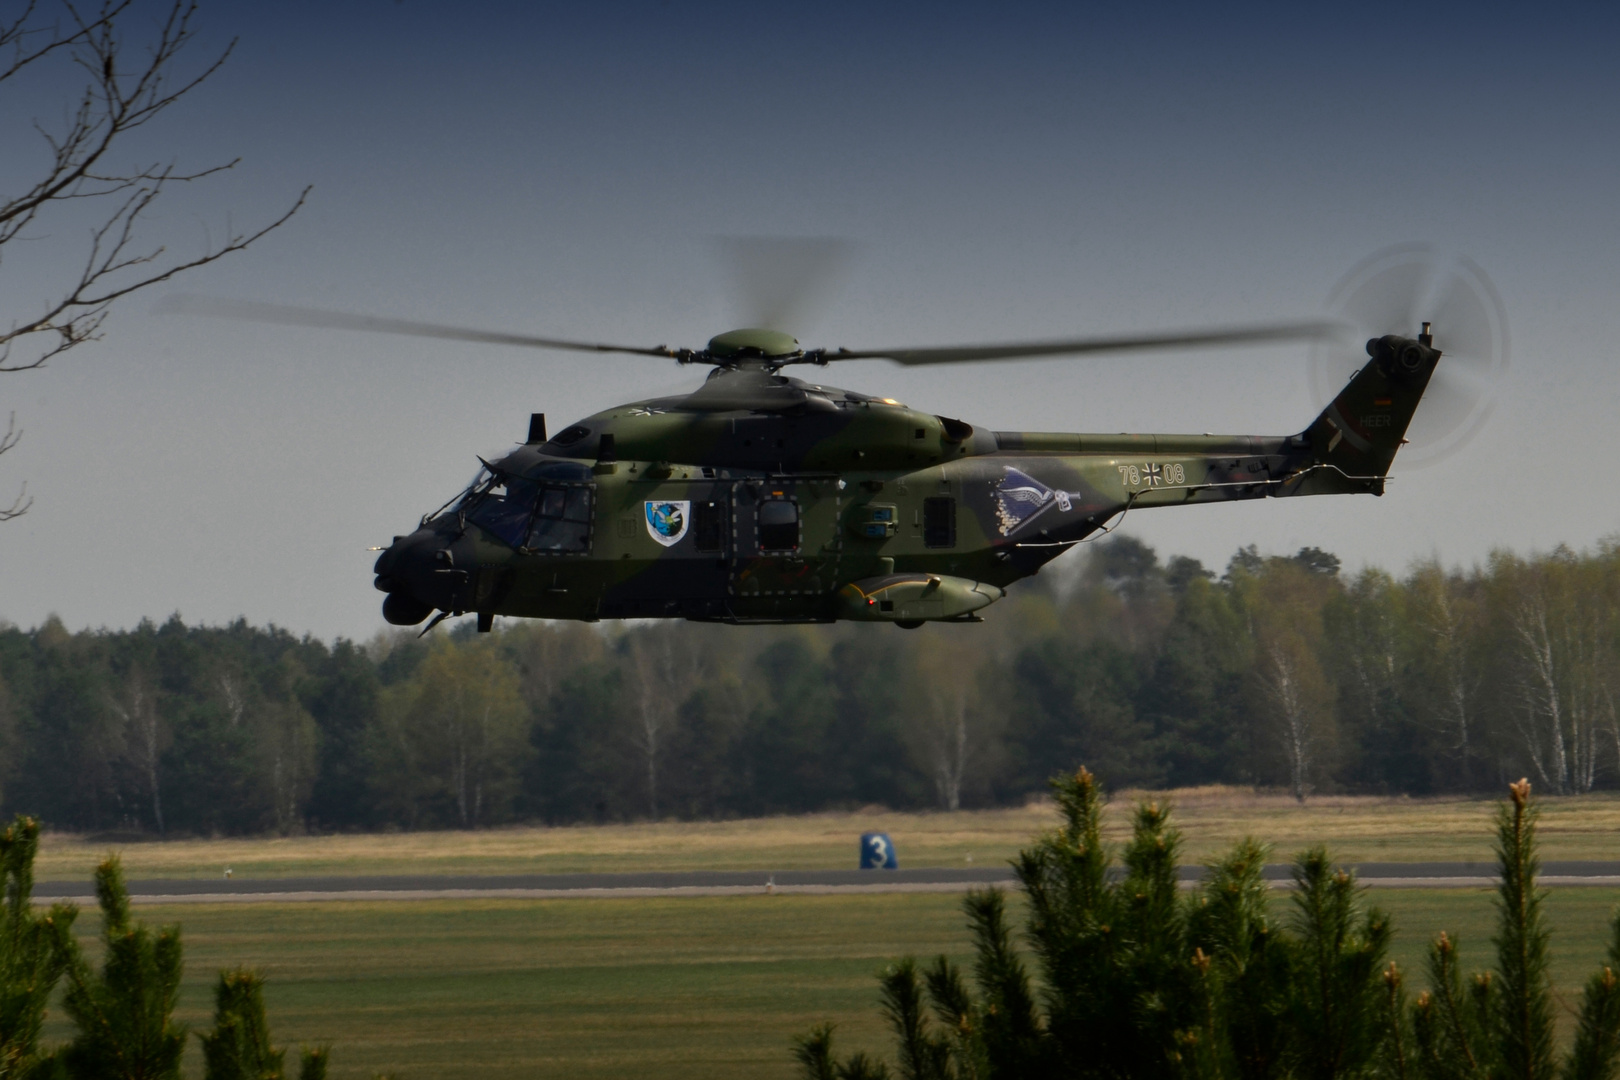 Farewell NH90 in Holzdorf